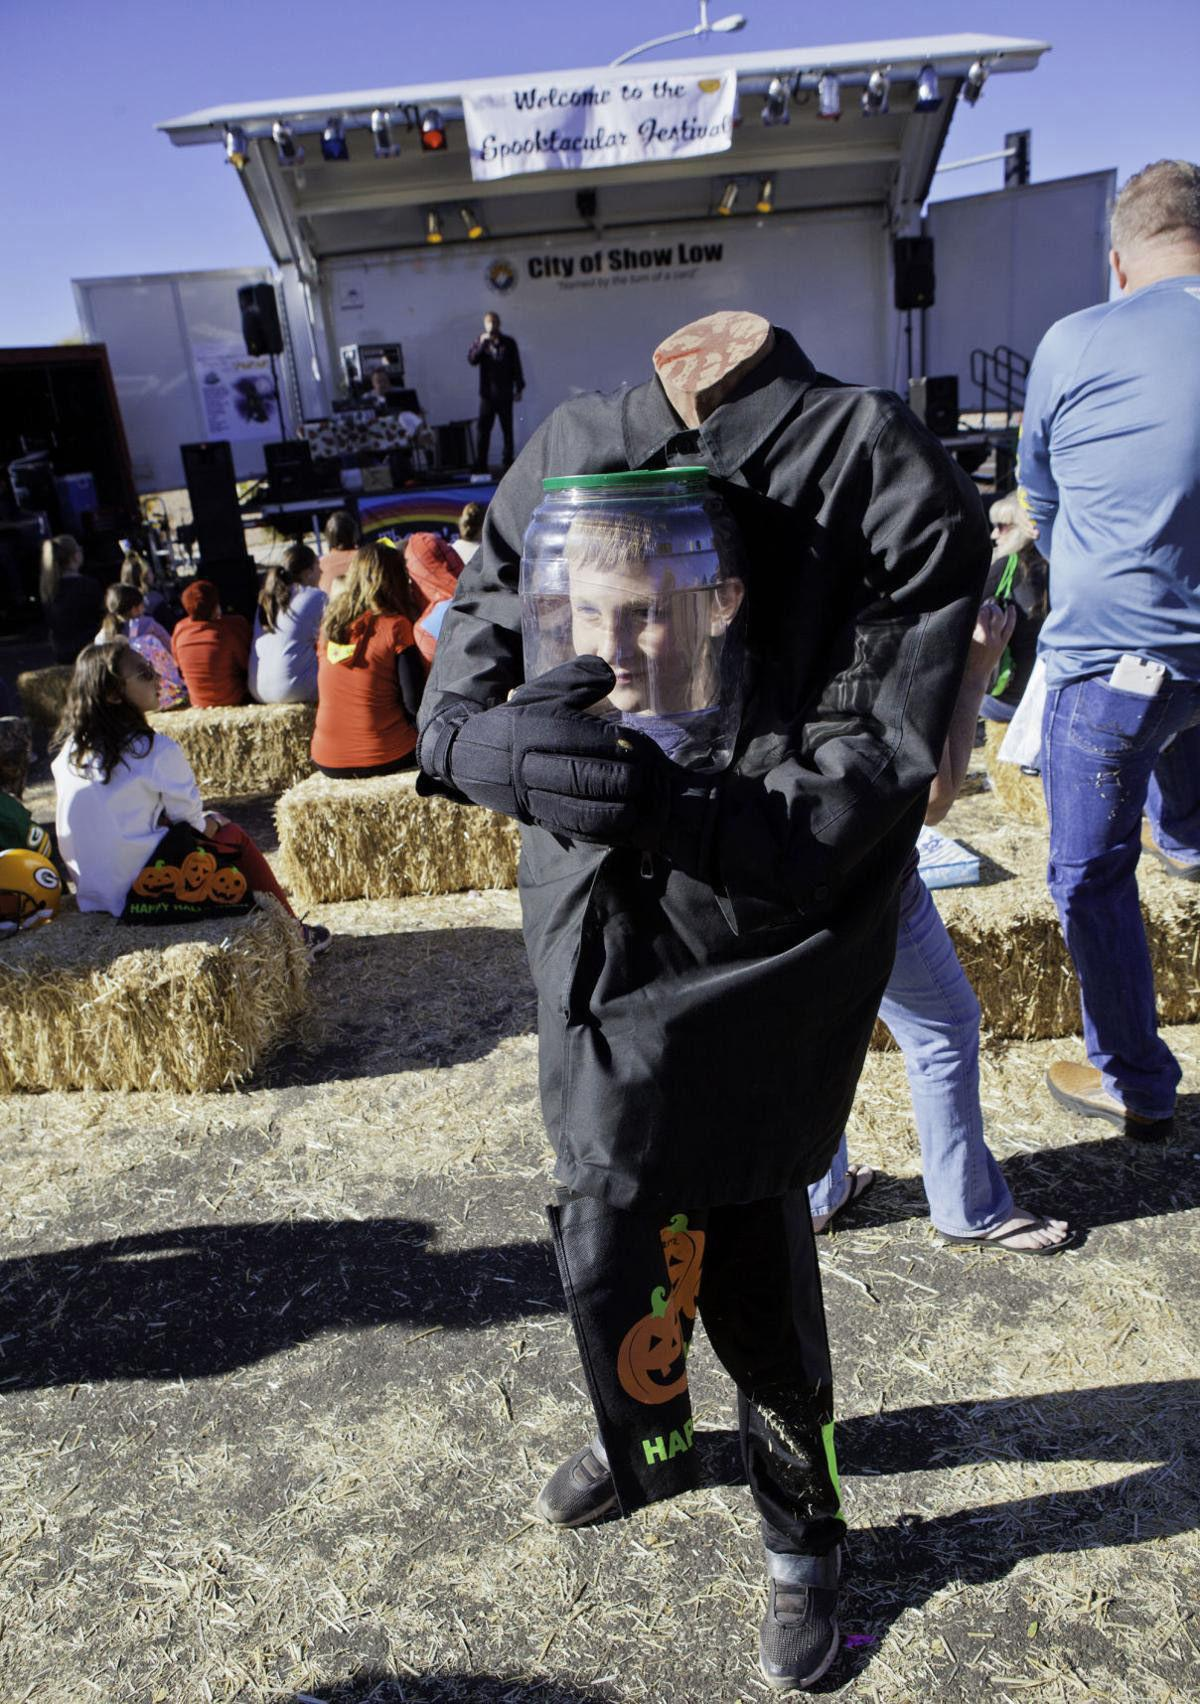 Pinetop Lakeside Halloween Stuff To Do 2020 Halloween activities | Get Out Events | wmicentral.com